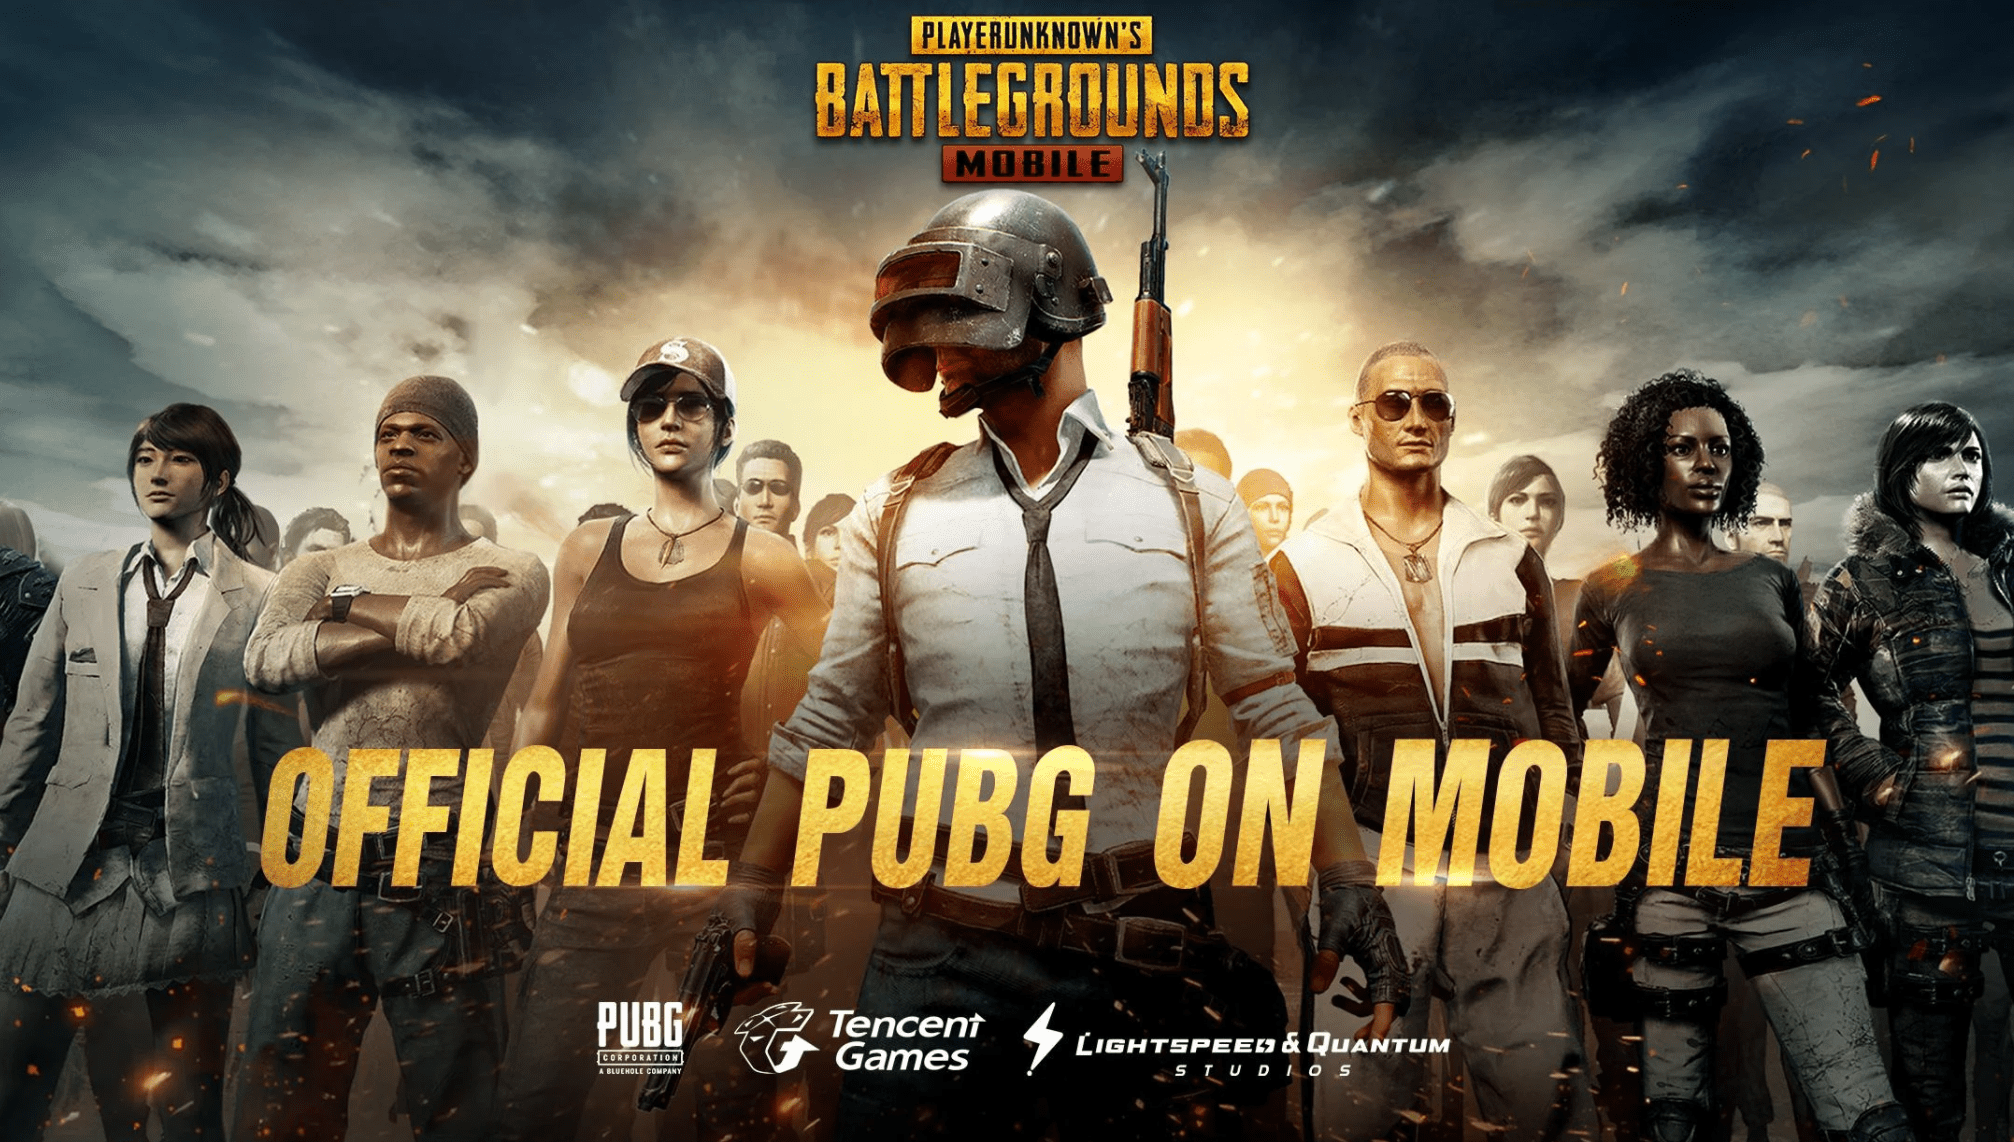 Screenshot of the official PUBG MOBILE game page